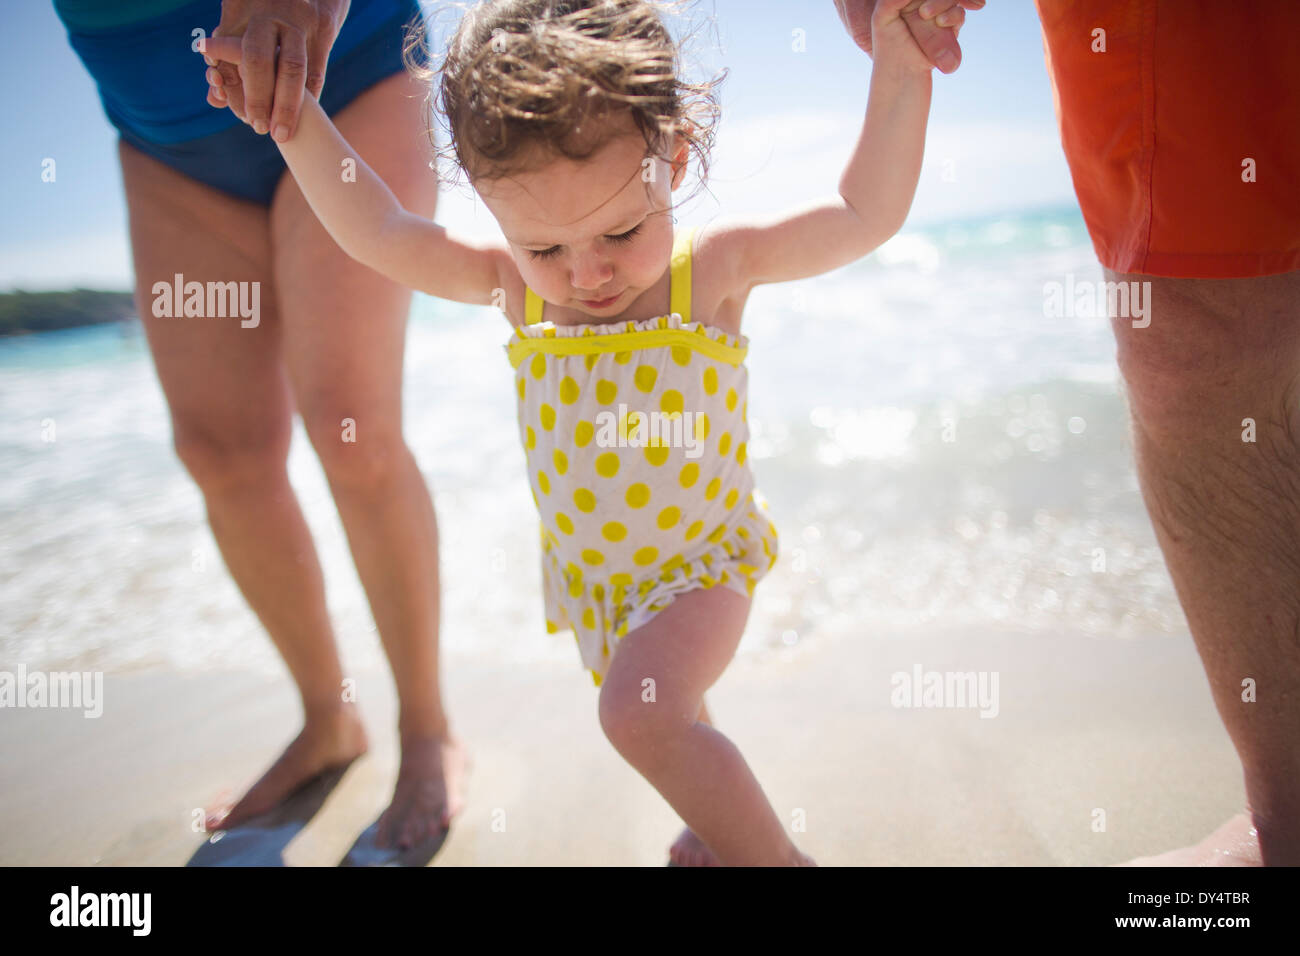 Toddler and grandparents holding hands, walking on beach - Stock Image